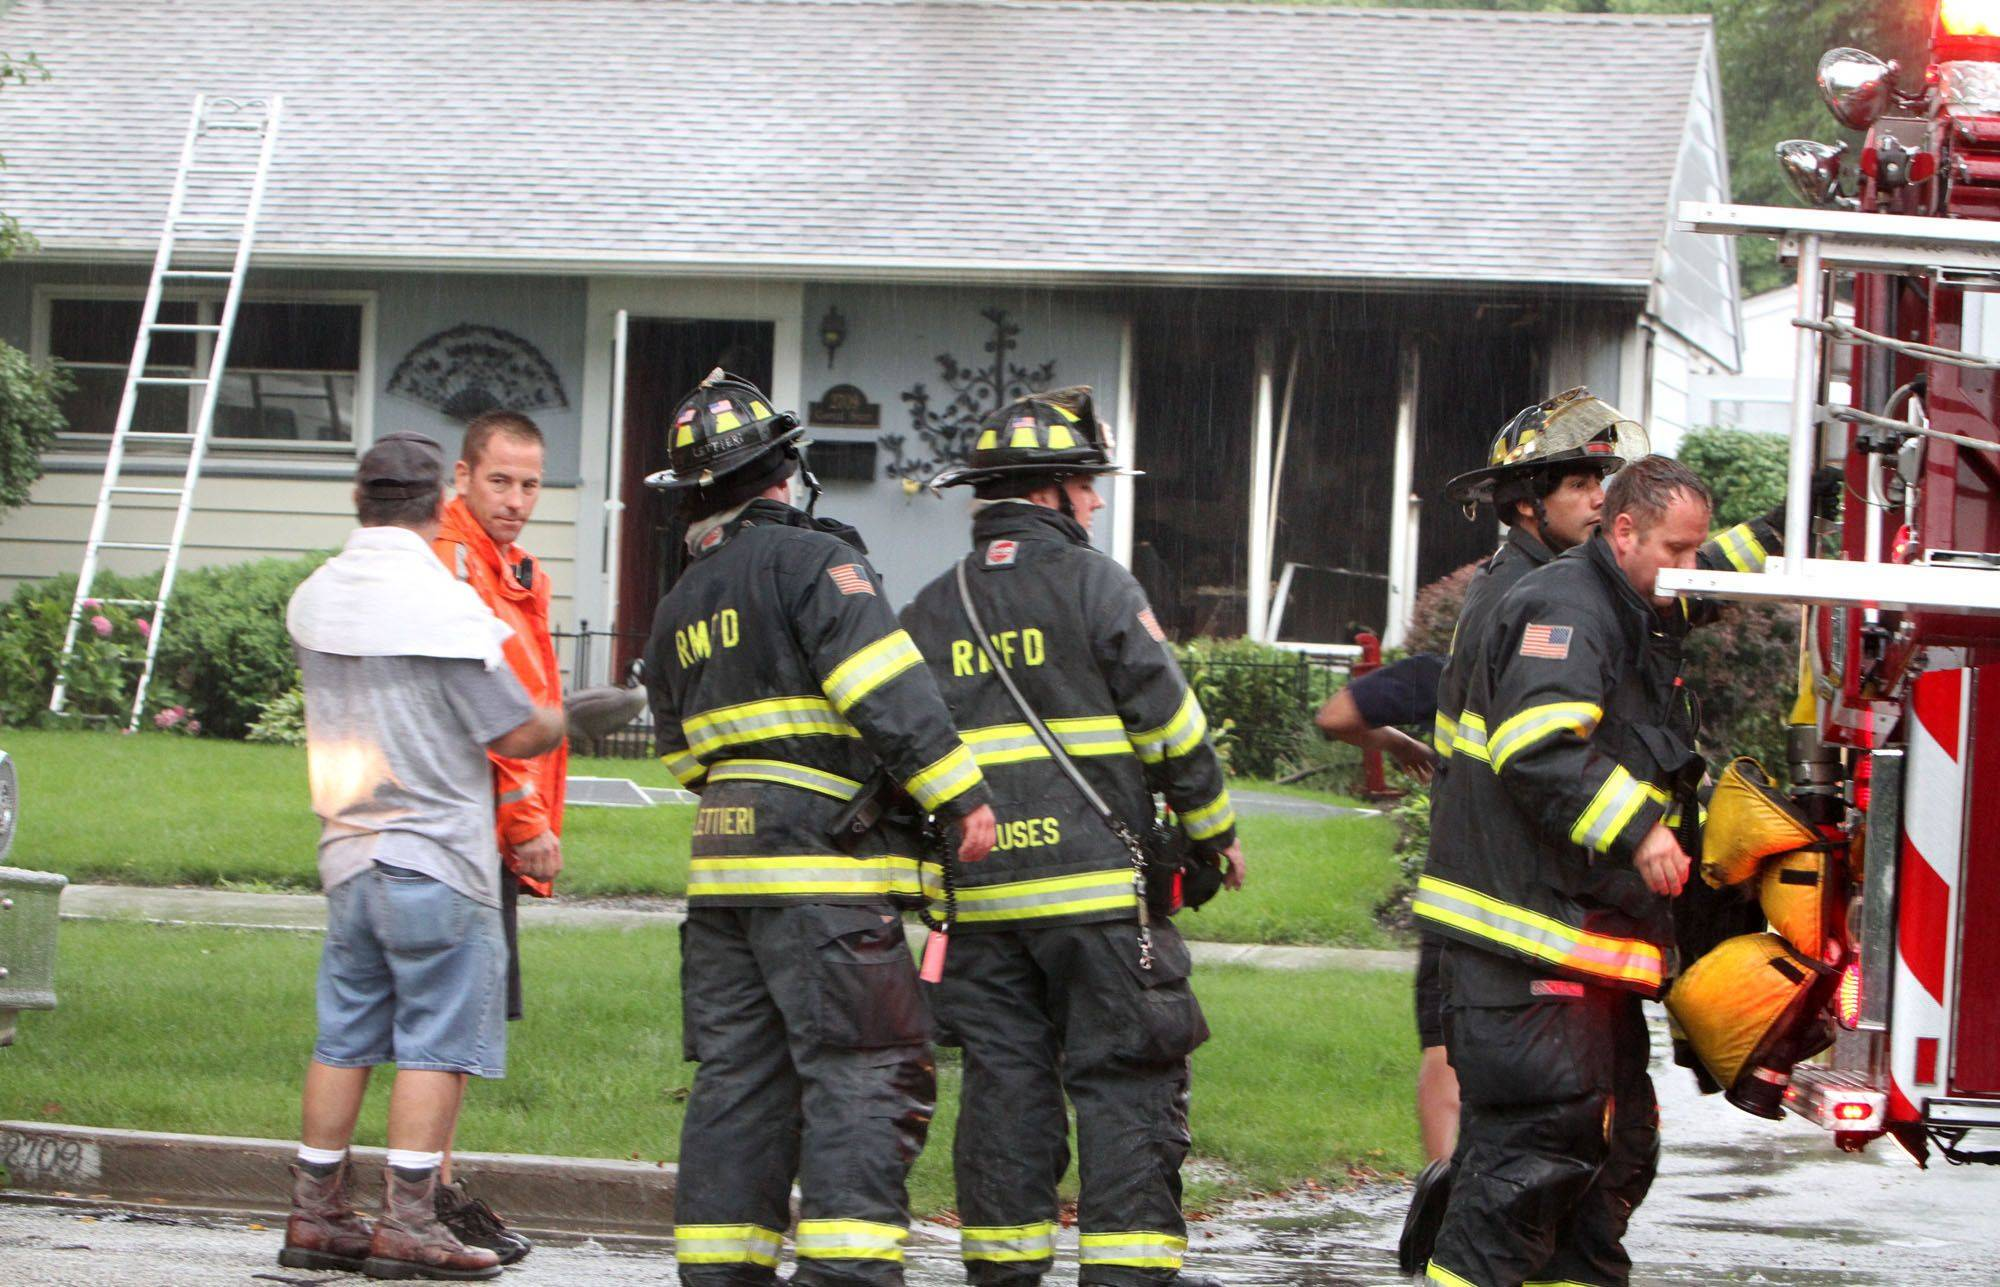 Rolling Meadows firefighters pack gear away Tuesday after extinguishing a house fire on the 2700 block of Campbell Street. A dog and two cats died in the fire, but no one was injured. The cause remains under investigation.